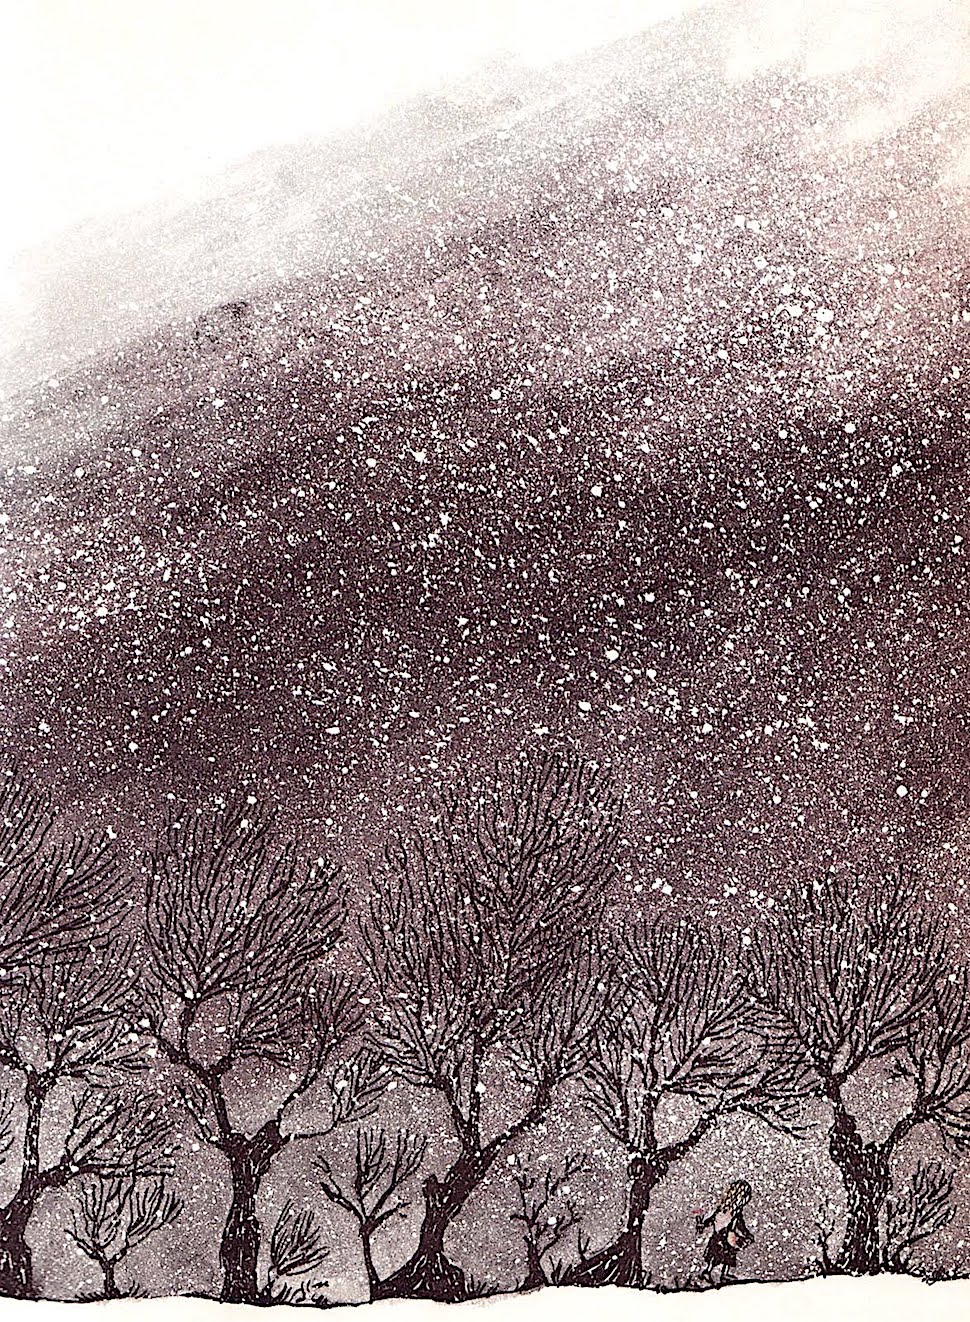 a Blair Lent 1968 children's illustration of a girl walking in a snow storm